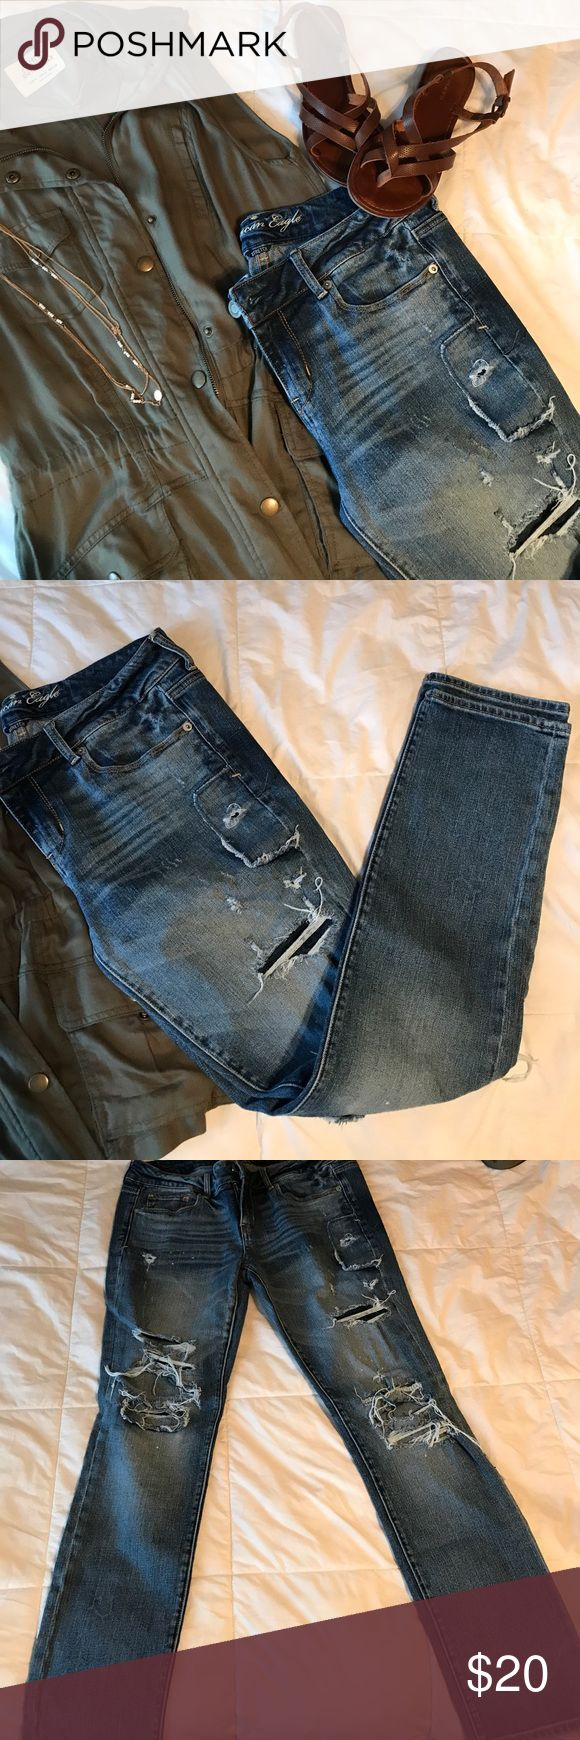 American Eagle distressed  skinny jeans American Eagle distressed skinny stretch jeans. Super cute & on trend! Purchased on posh but too big for me 😫 29 in inseam. Price is negotiable, please use offer button. Discounts on bundles. American Eagle Outfitters Jeans Skinny